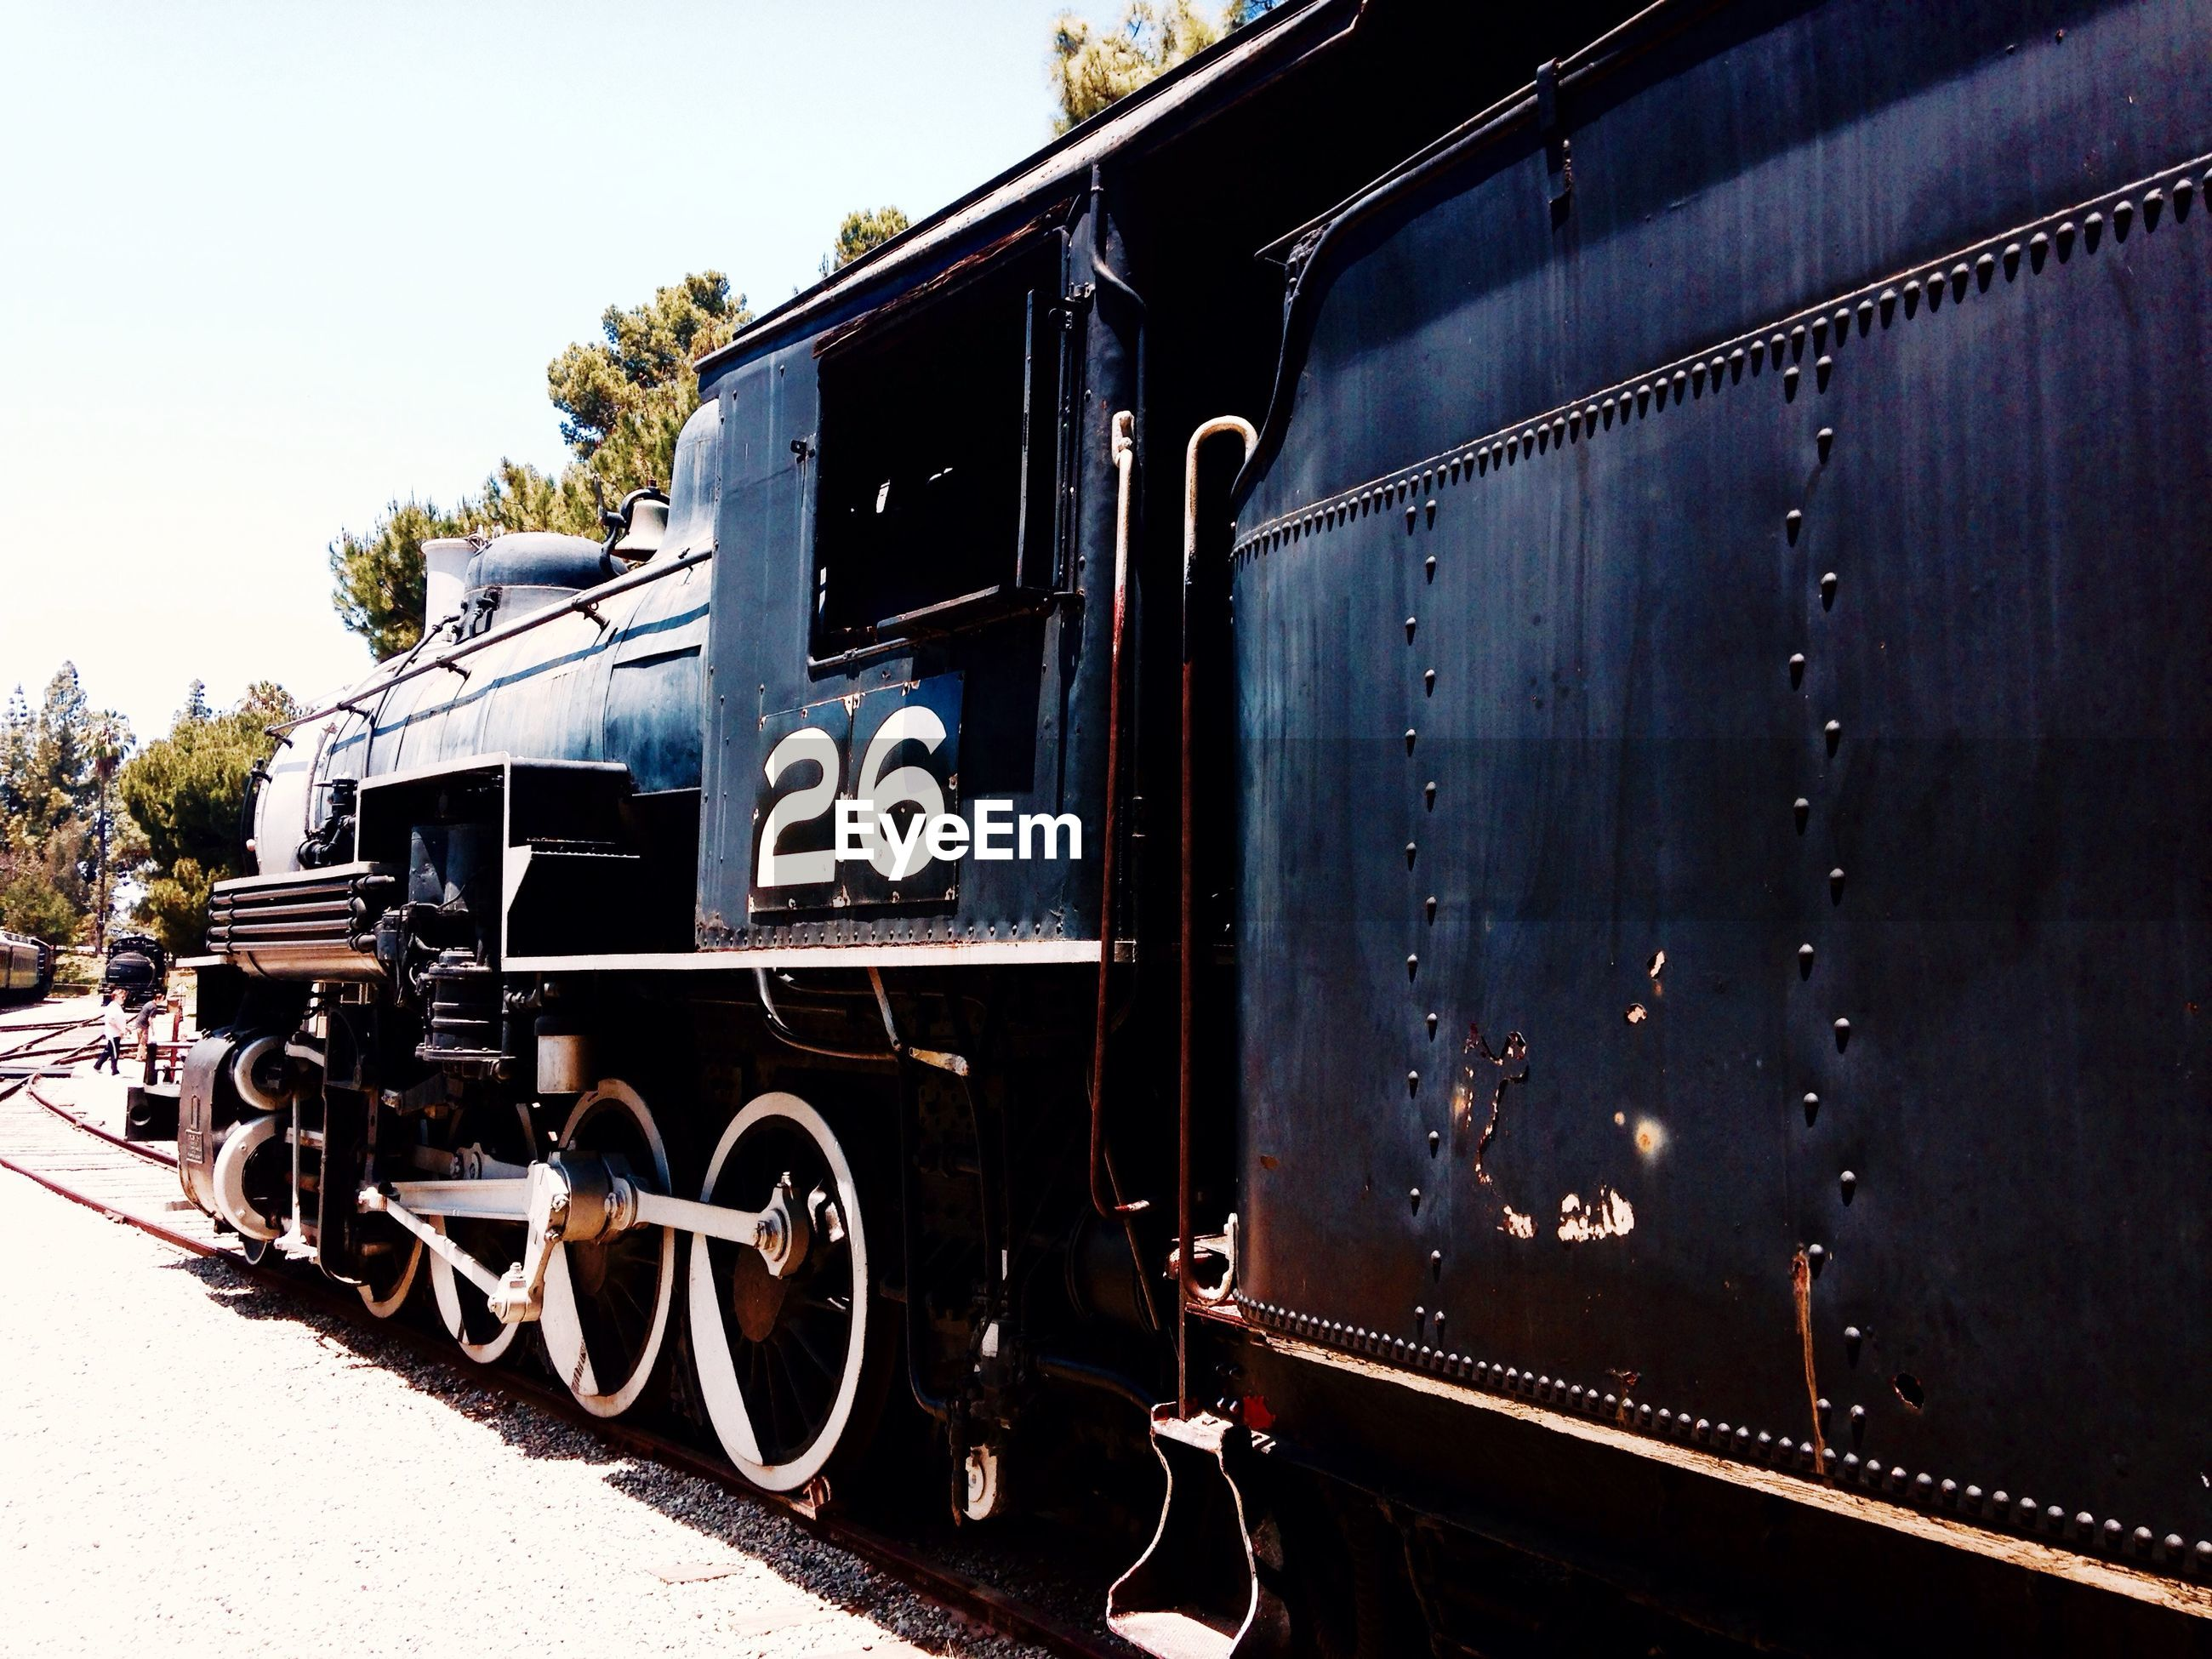 View of steam train on track